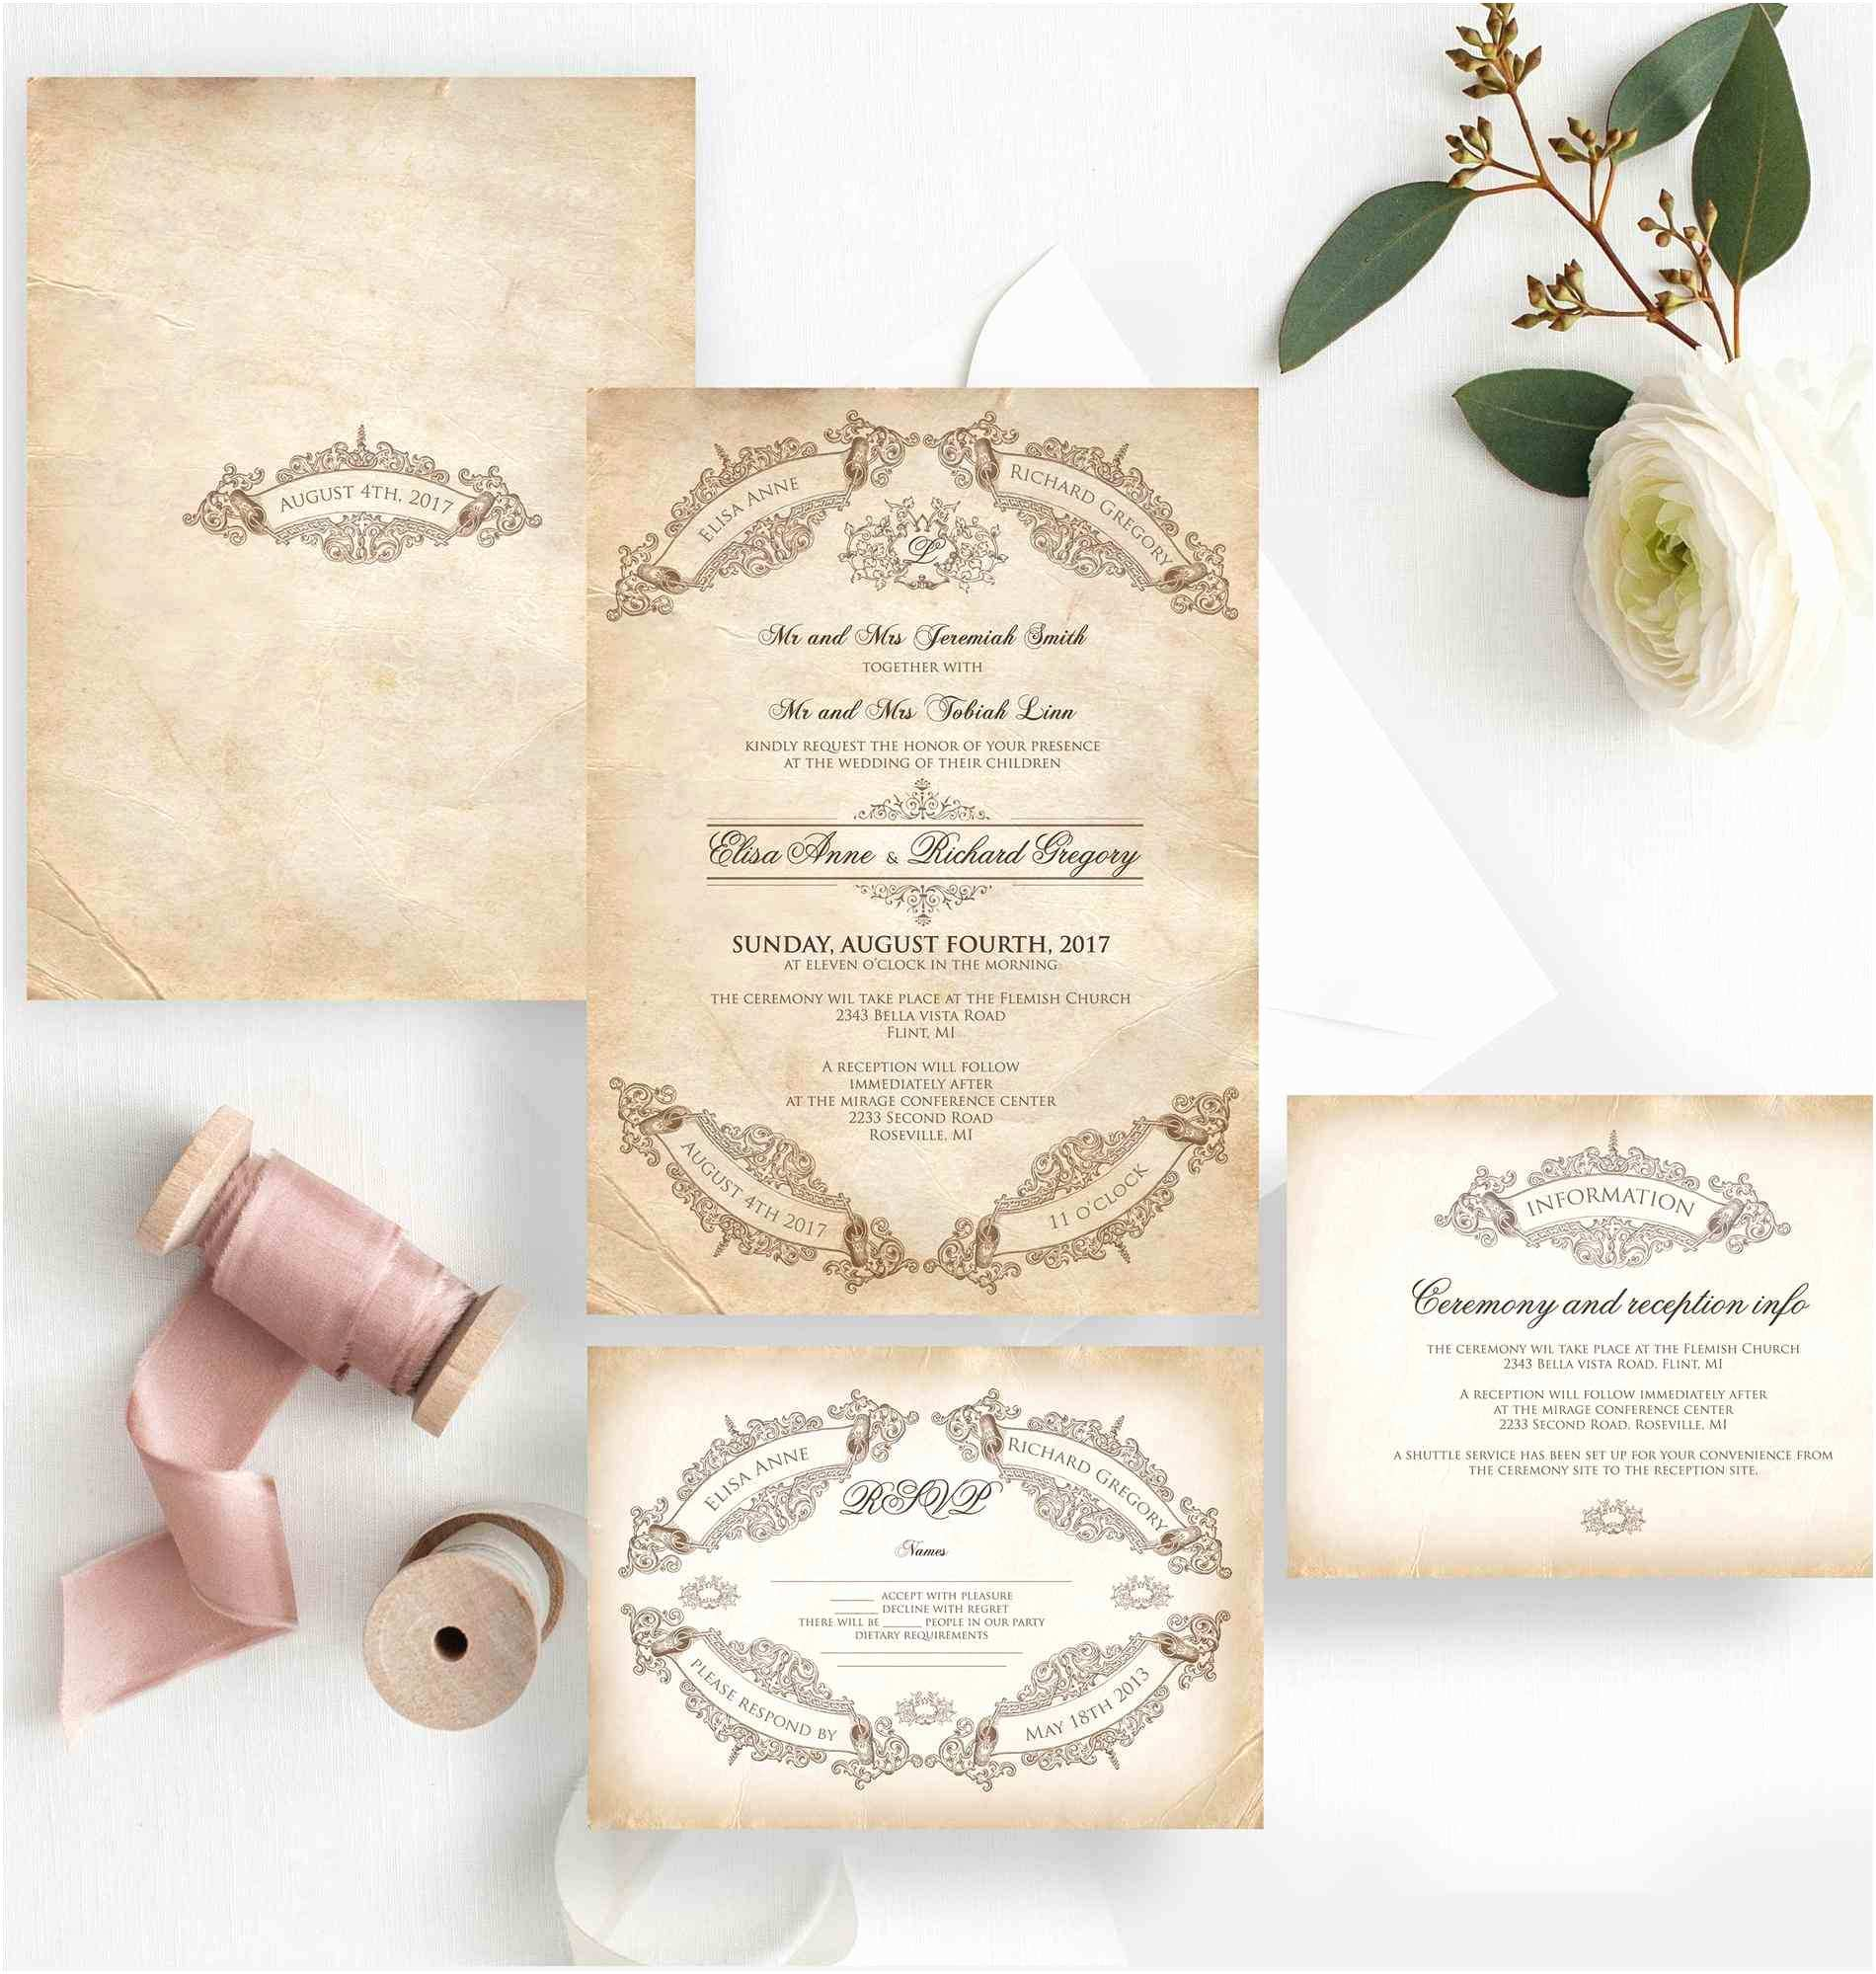 Wedding Invitations orlando Fl Hall Rhmaureenhall Rhagainsthillary Wedding